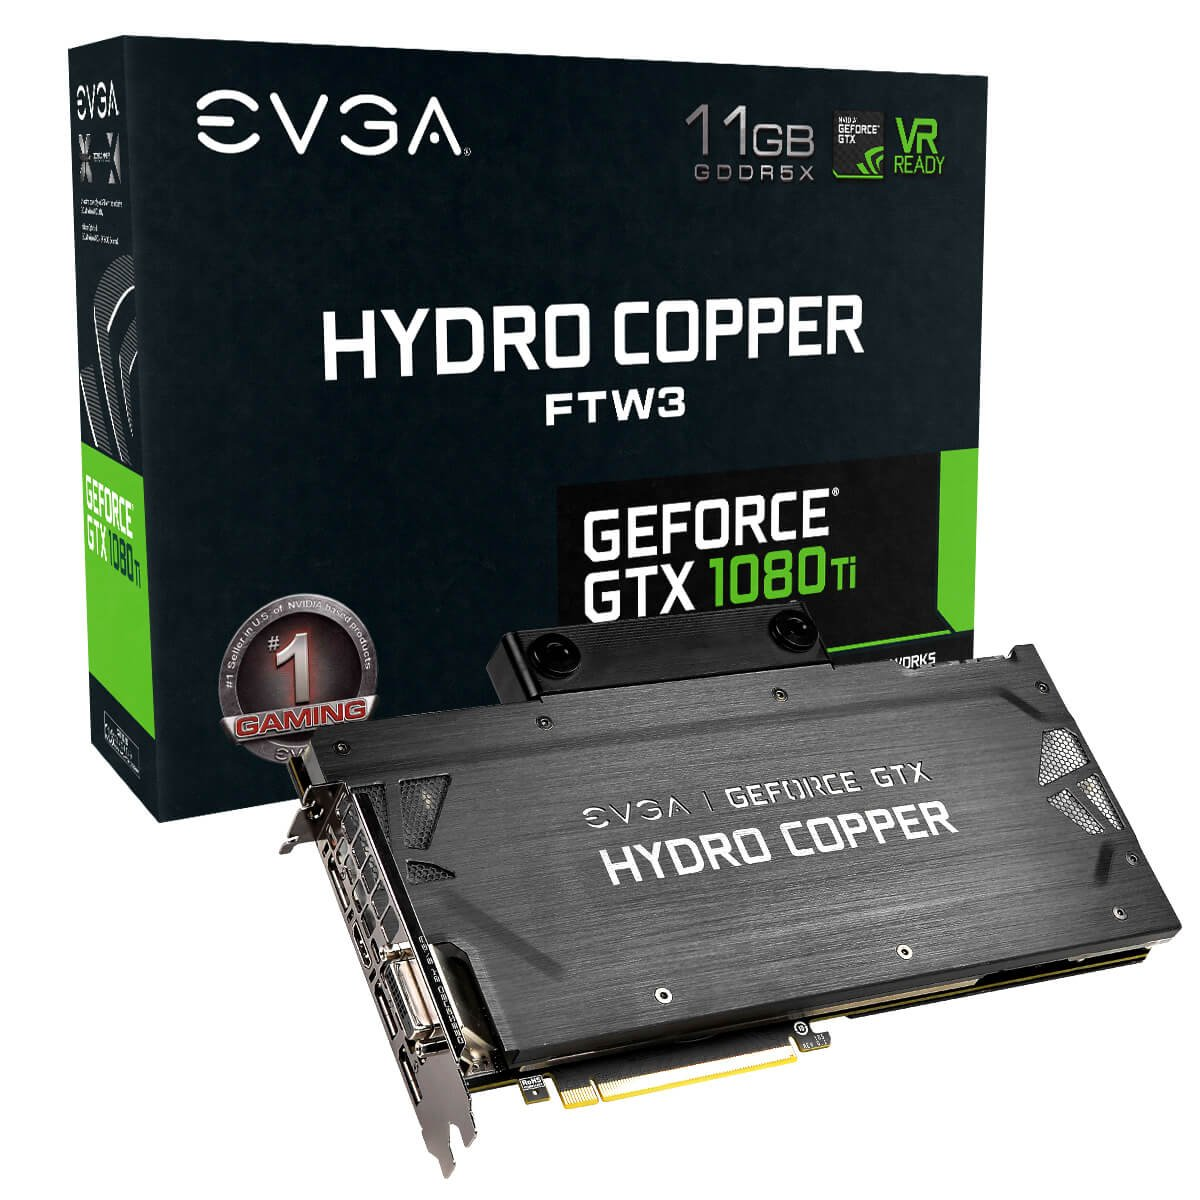 EVGA GeForce GTX 1080 Ti FTW3 Hydro Copper GAMING, 11GB GDDR5X, Hydro Copper Waterblock & RGB LED, iCX Technology - 9 Thermal Sensors 11G-P4-6699-KR